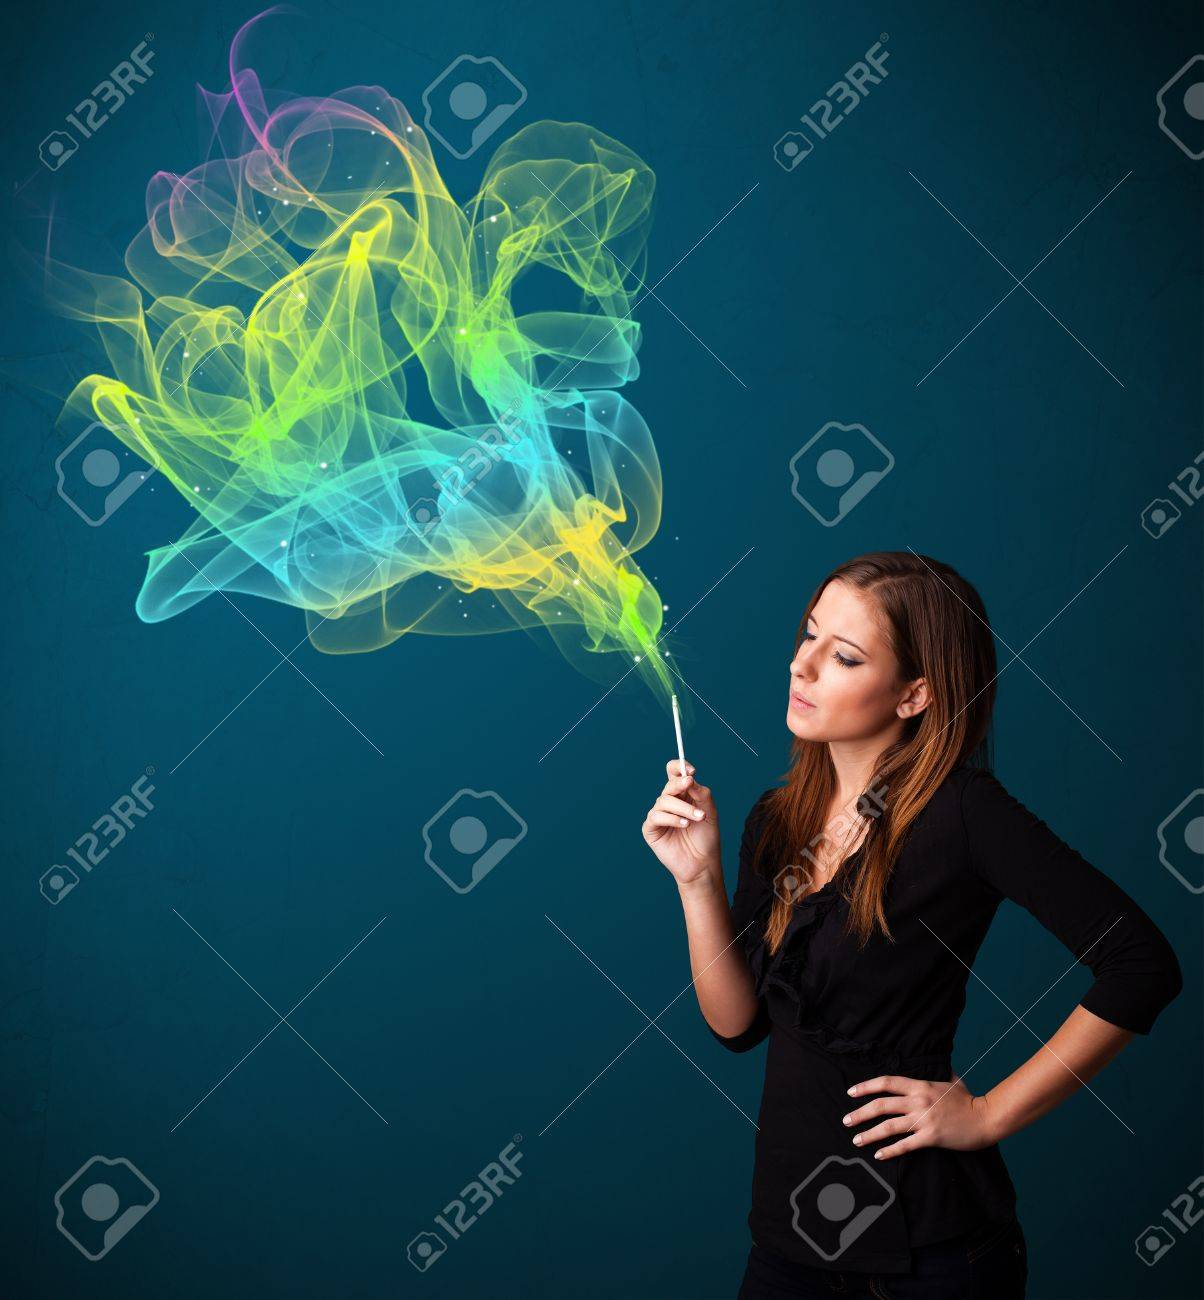 Pretty young lady smoking cigarette with colorful smoke Stock Photo - 16746786